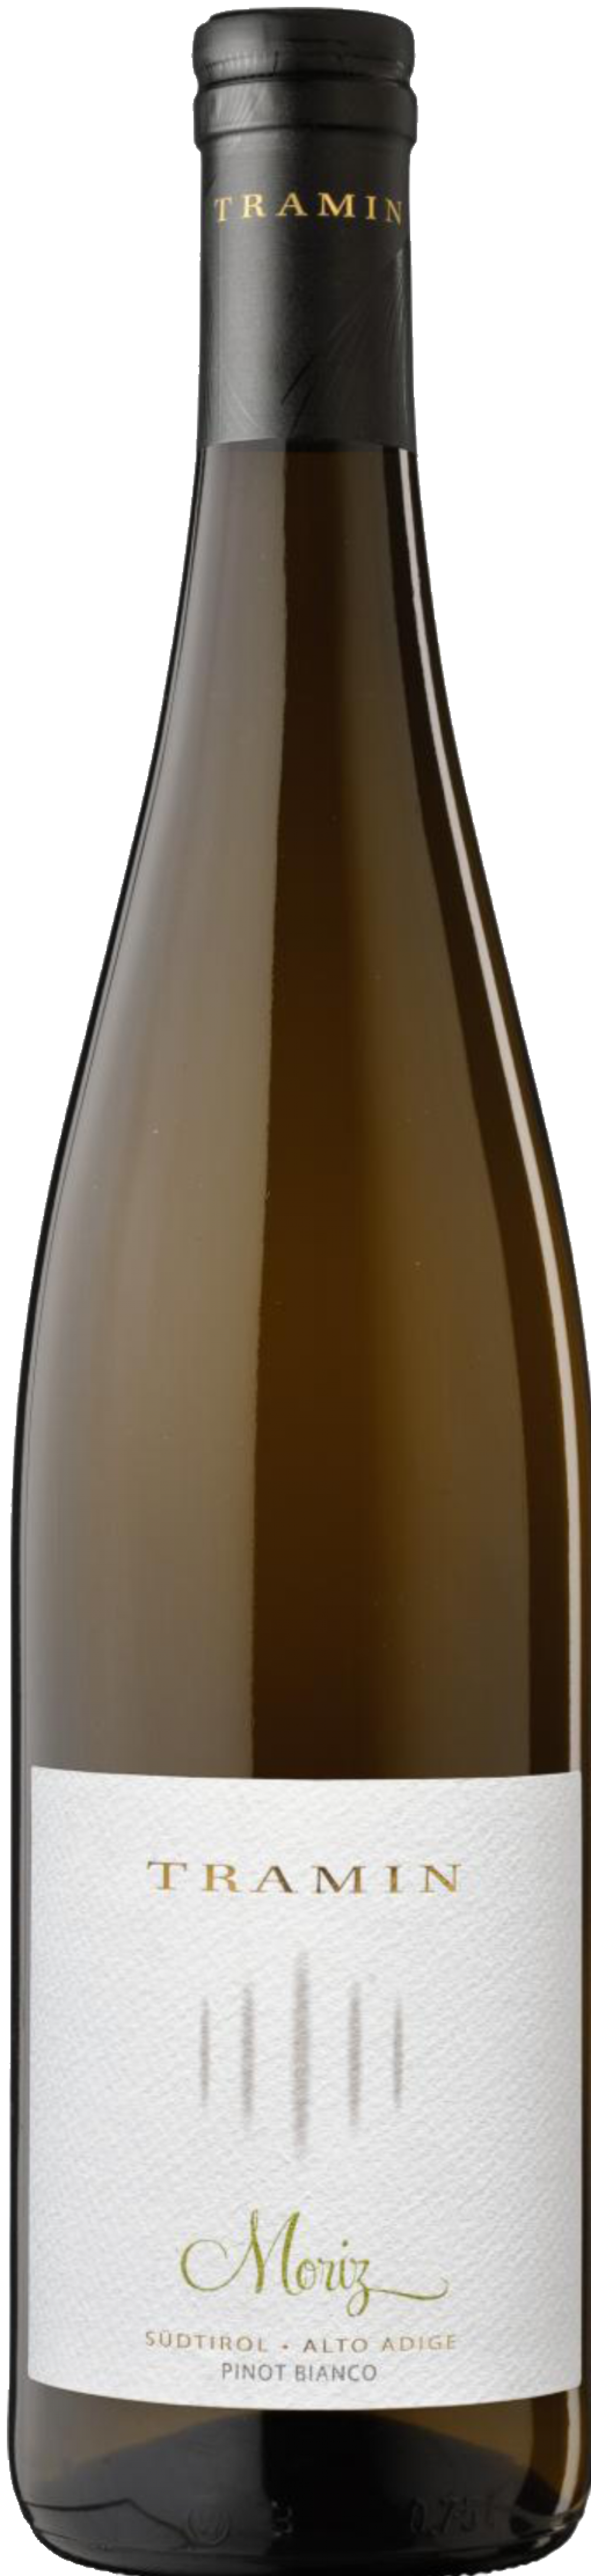 files/images/wines/Italy/cantina-tramin/IT1460.png